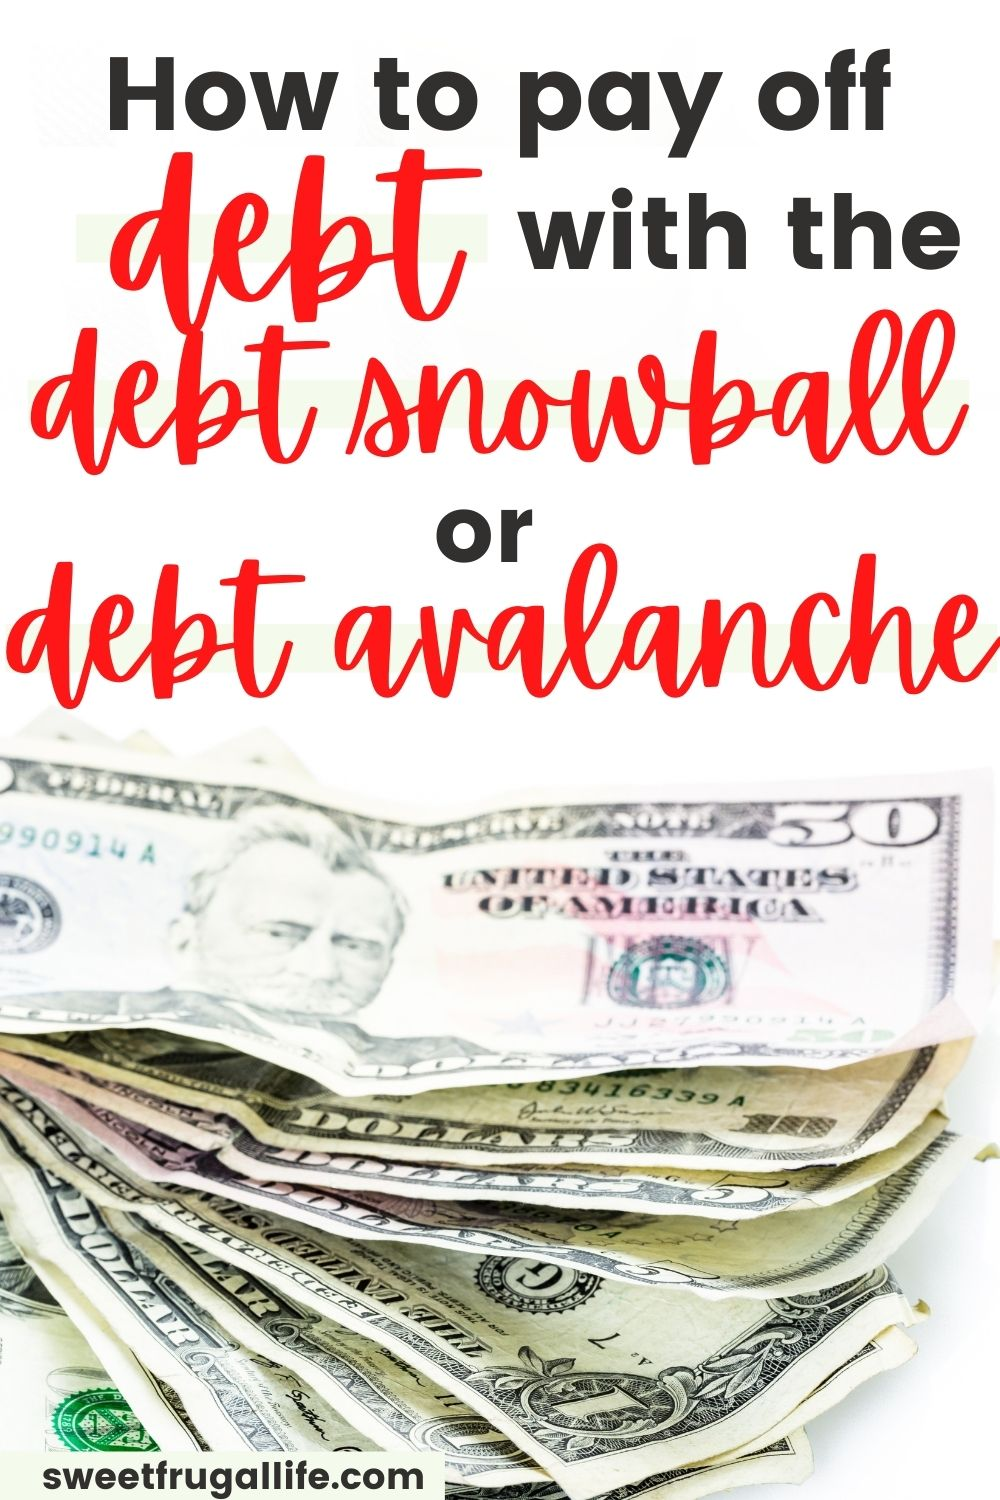 pay off debt with debt snowball or debt avalanche